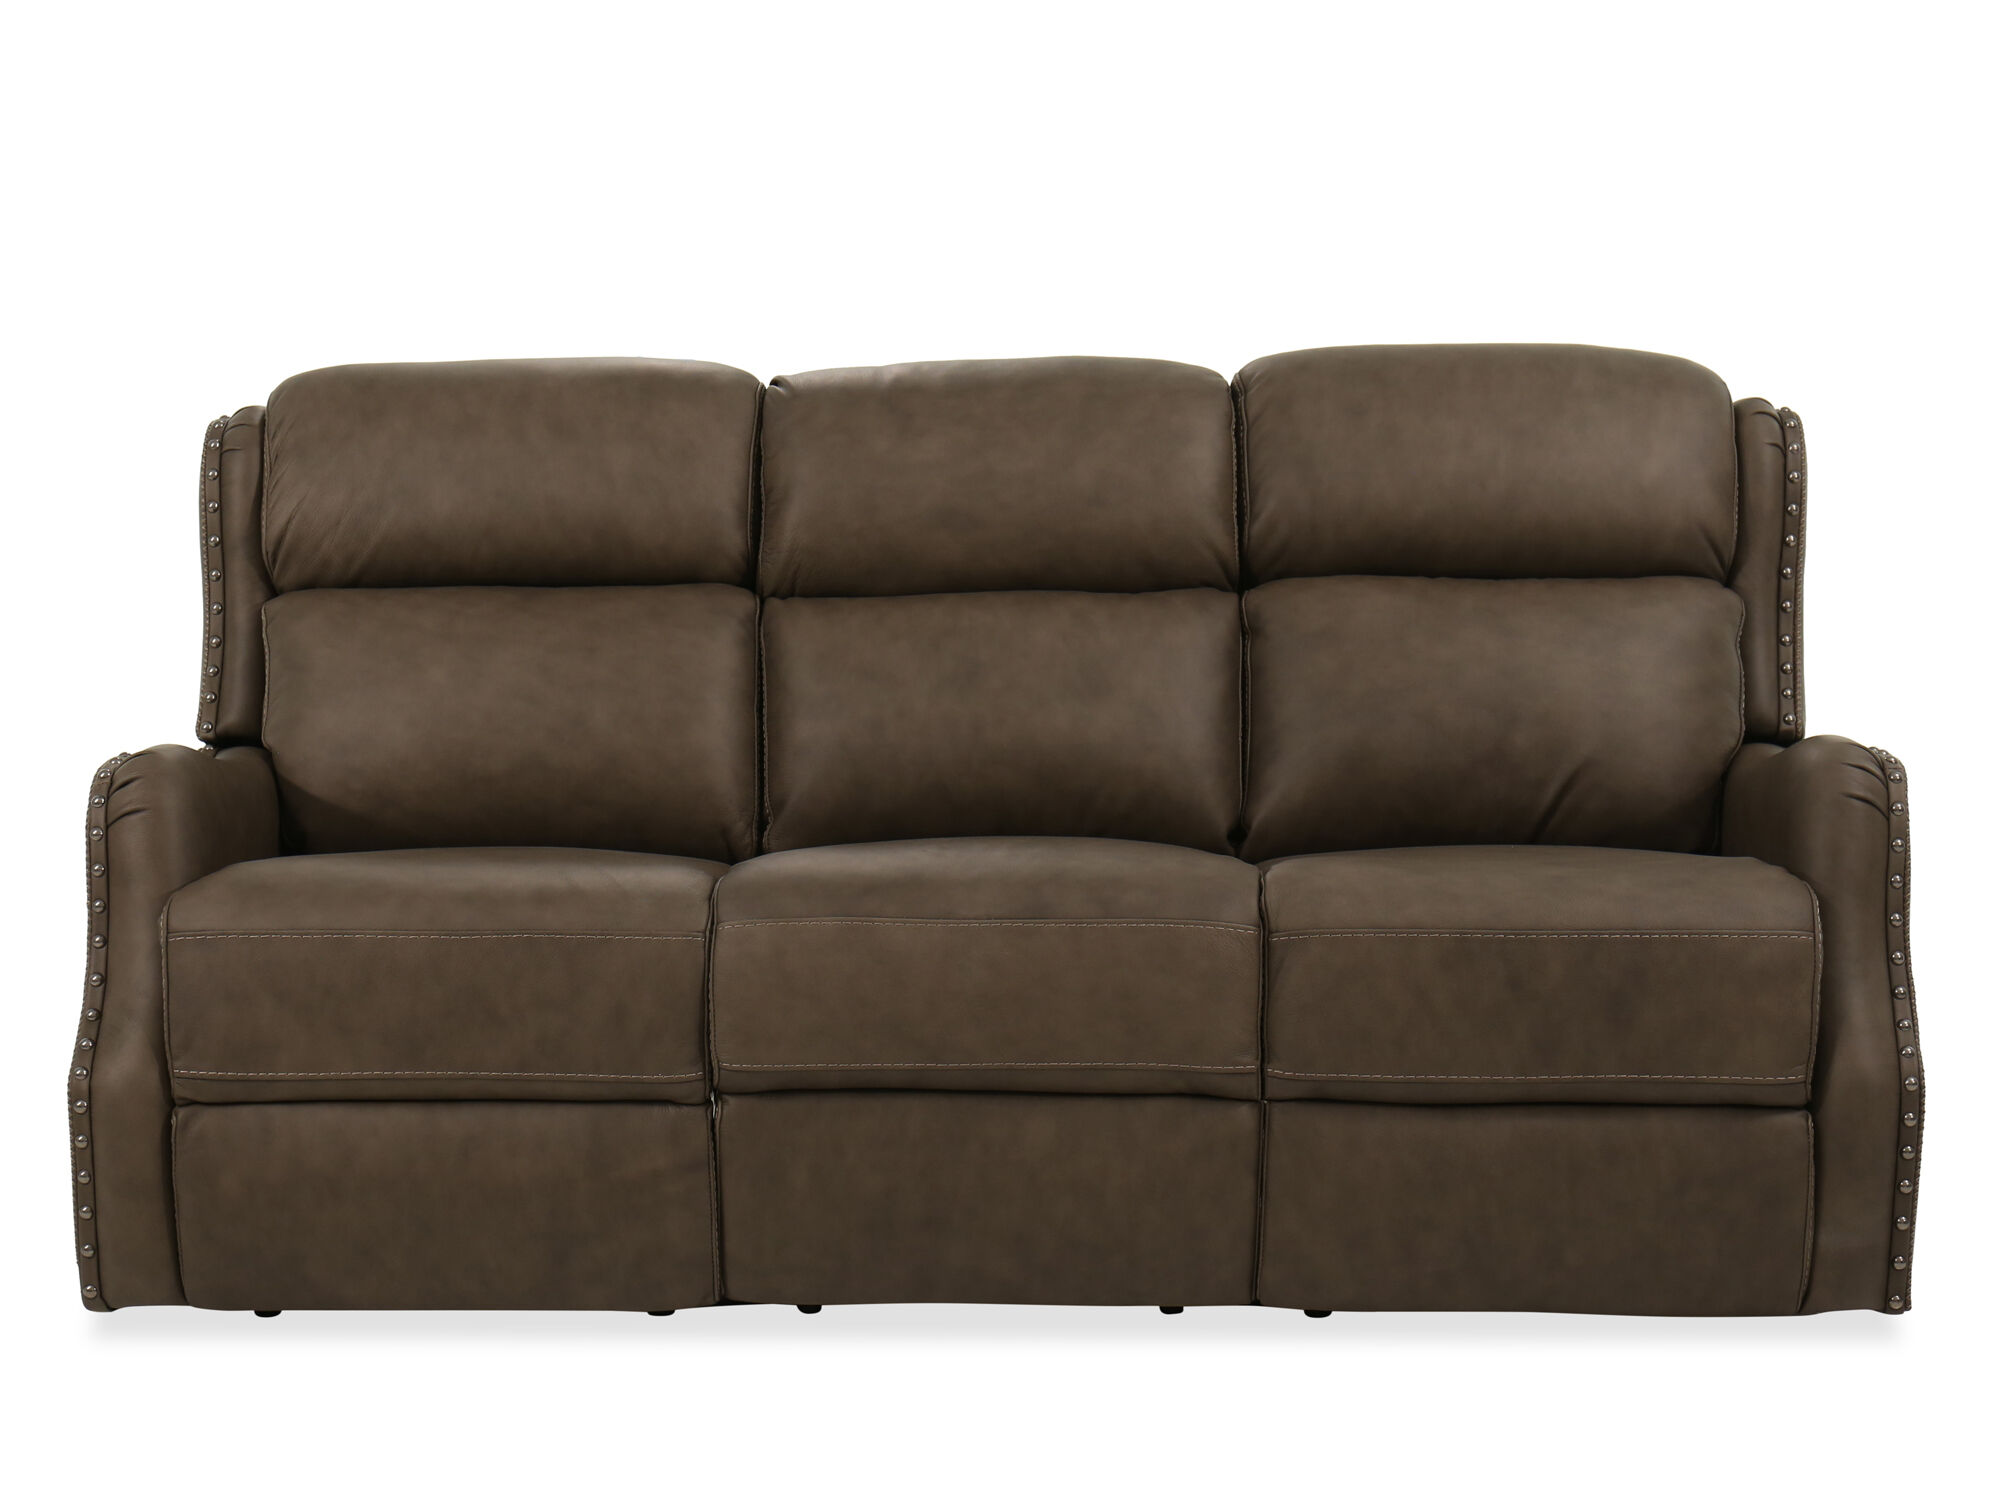 78 Quot Leather Power Headrest Sofa In Brown Mathis Brothers